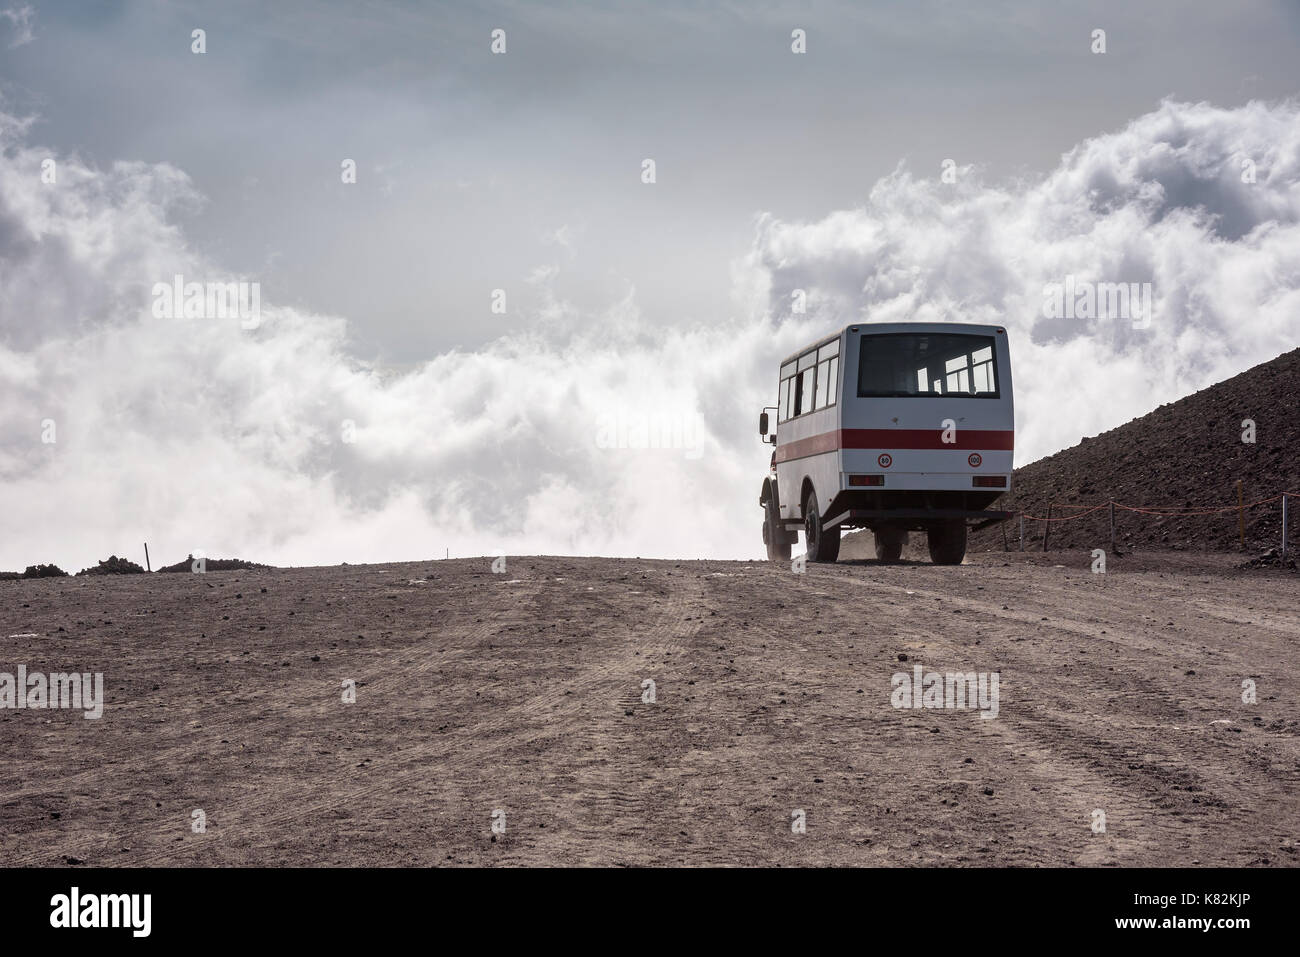 Departing bus from Torre del Filosofo on Mount Etna, Sicily, Italy Stock Photo